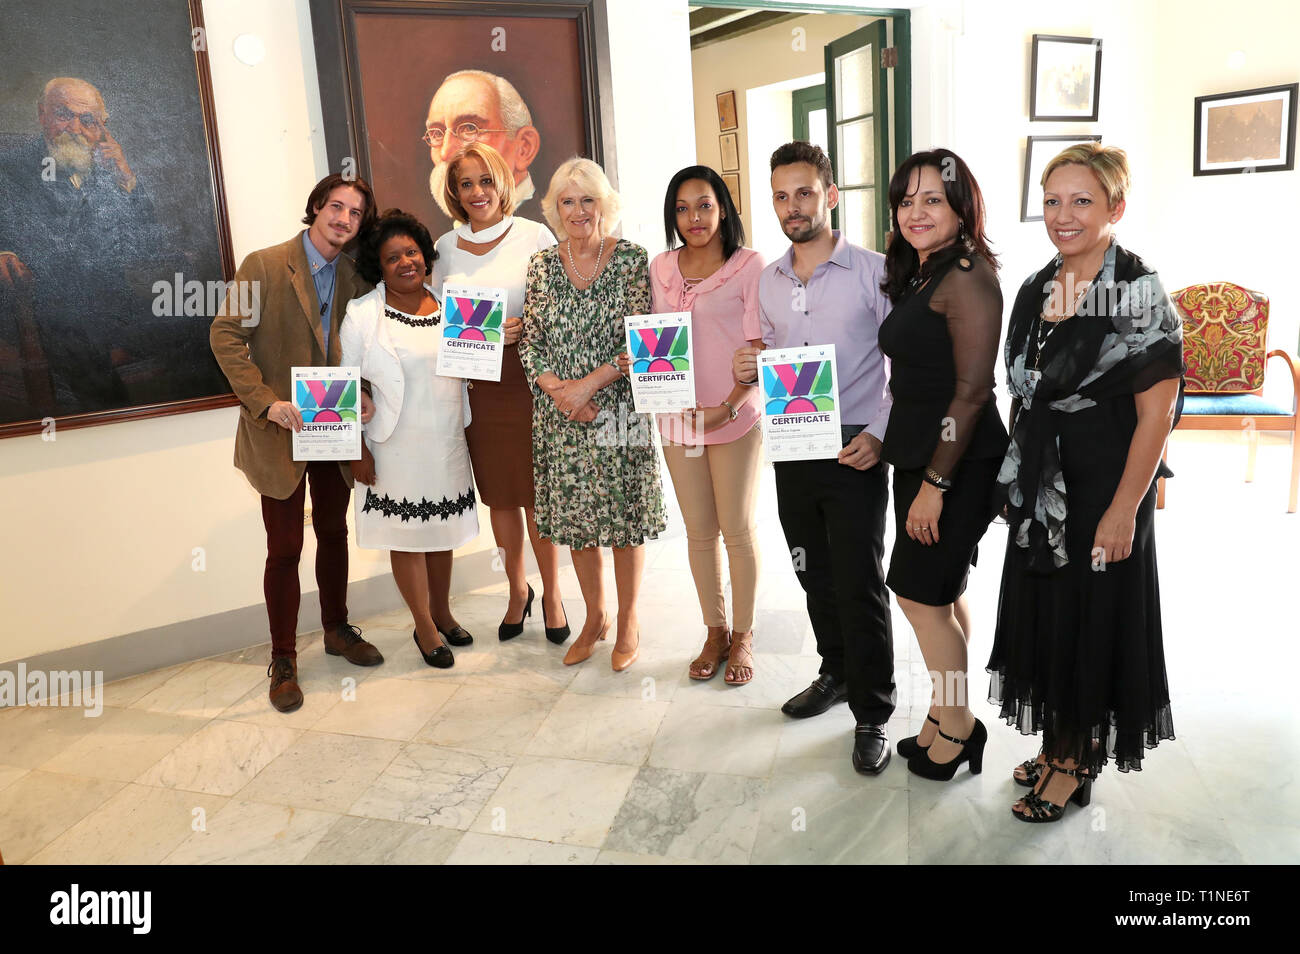 The Duchess of Cornwall meets organisers and winners of the English language essay competition 'Bridges between Cuba and the UK' ahead of a reception at the Palacio de los Capitanes Generales in Havana, Cuba. - Stock Image